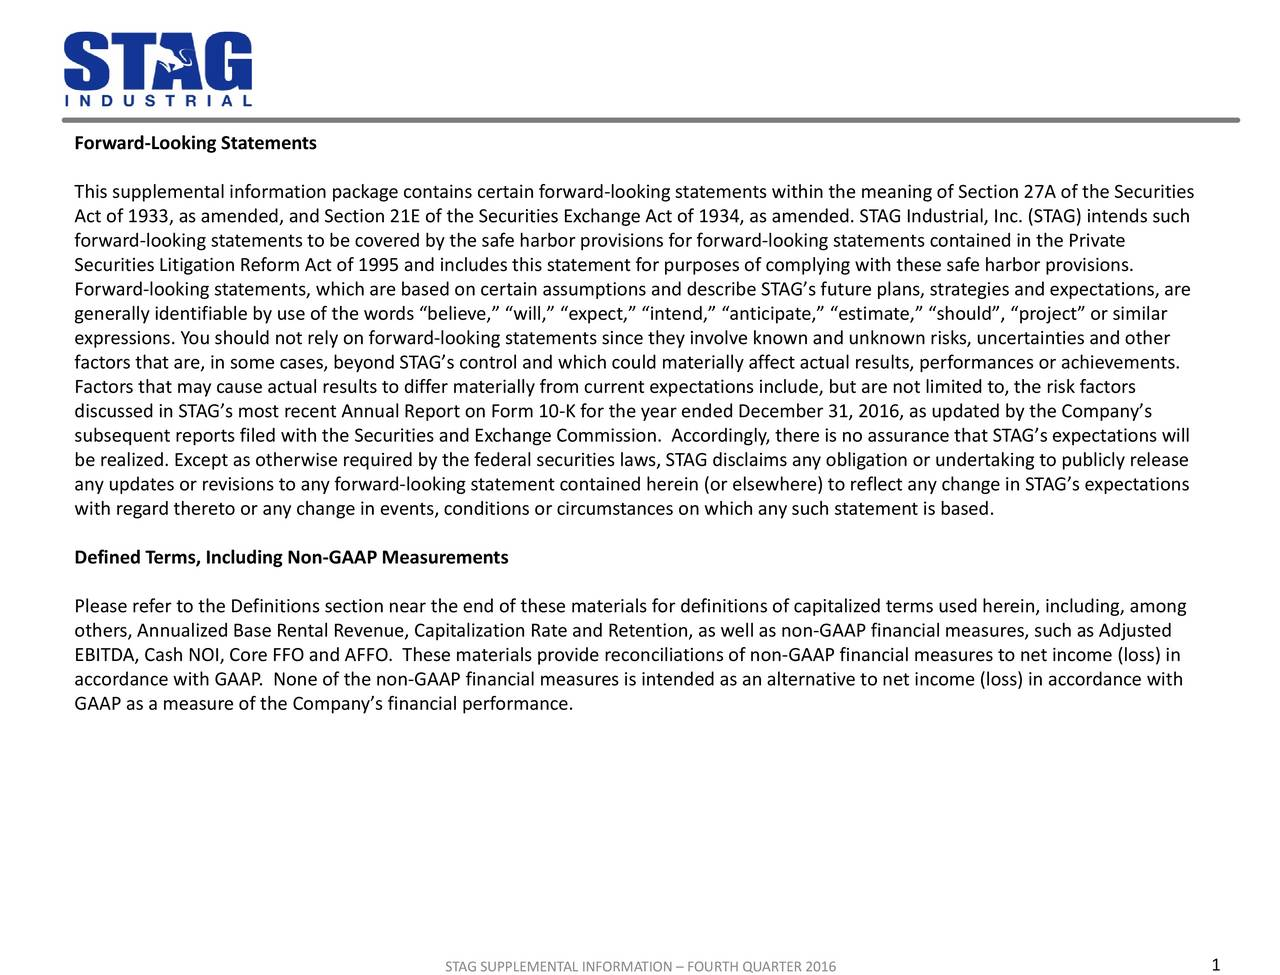 This supplemental information package contains certain forward-looking statements within the meaning of Section27A of the Securities Act of 1933, as amended, and Section21E of the Securities Exchange Act of 1934, as amended. STAG Industrial, Inc. (STAG) intends such forward-looking statements to be covered by the safe harbor provisions for forward-looking statements contained in the Private Securities Litigation Reform Act of 1995 and includes this statement for purposes of complying with these safe harbor provisions. Forward-looking statements, which are based on certain assumptions and describe STAGs future plans, strategies and expectations, are generally identifiable by use of the words believe, will, expect, intend, anticipate, estimate, should, project or similar expressions. You should not rely on forward-looking statements since they involve known and unknown risks, uncertainties and other factors that are, in some cases, beyond STAGs control and which could materially affect actual results, performances or achievements. Factors that may cause actual results to differ materially from current expectations include, but are not limited to, the risk factors discussed in STAGs most recent Annual Report on Form 10-K for the year ended December 31, 2016, as updated by the Companys subsequent reports filed with the Securities and Exchange Commission. Accordingly, there is no assurance that STAGs expectations will be realized. Except as otherwise required by the federal securities laws, STAG disclaims any obligation or undertaking to publicly release any updates or revisions to any forward-looking statement contained herein (or elsewhere) to reflect any change in STAGs expectations with regard thereto or any change in events, conditions or circumstances on which any such statement is based. Defined Terms, Including Non-GAAP Measurements Please refer to the Definitions section near the end of these materials for definitions of capitalized terms used herein, including,